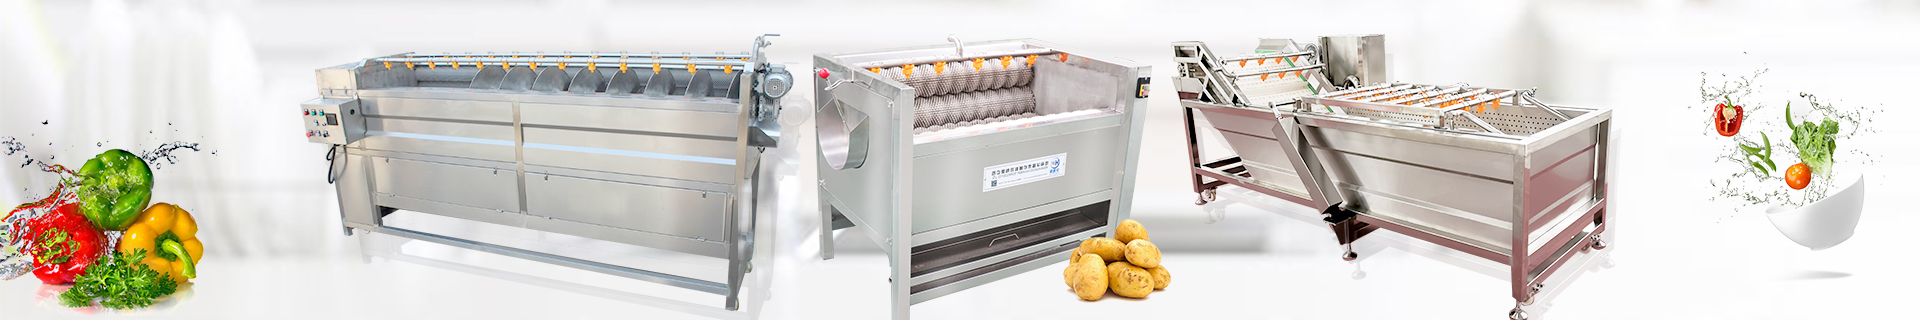 ProductsArchive-Foodprocessingmachine